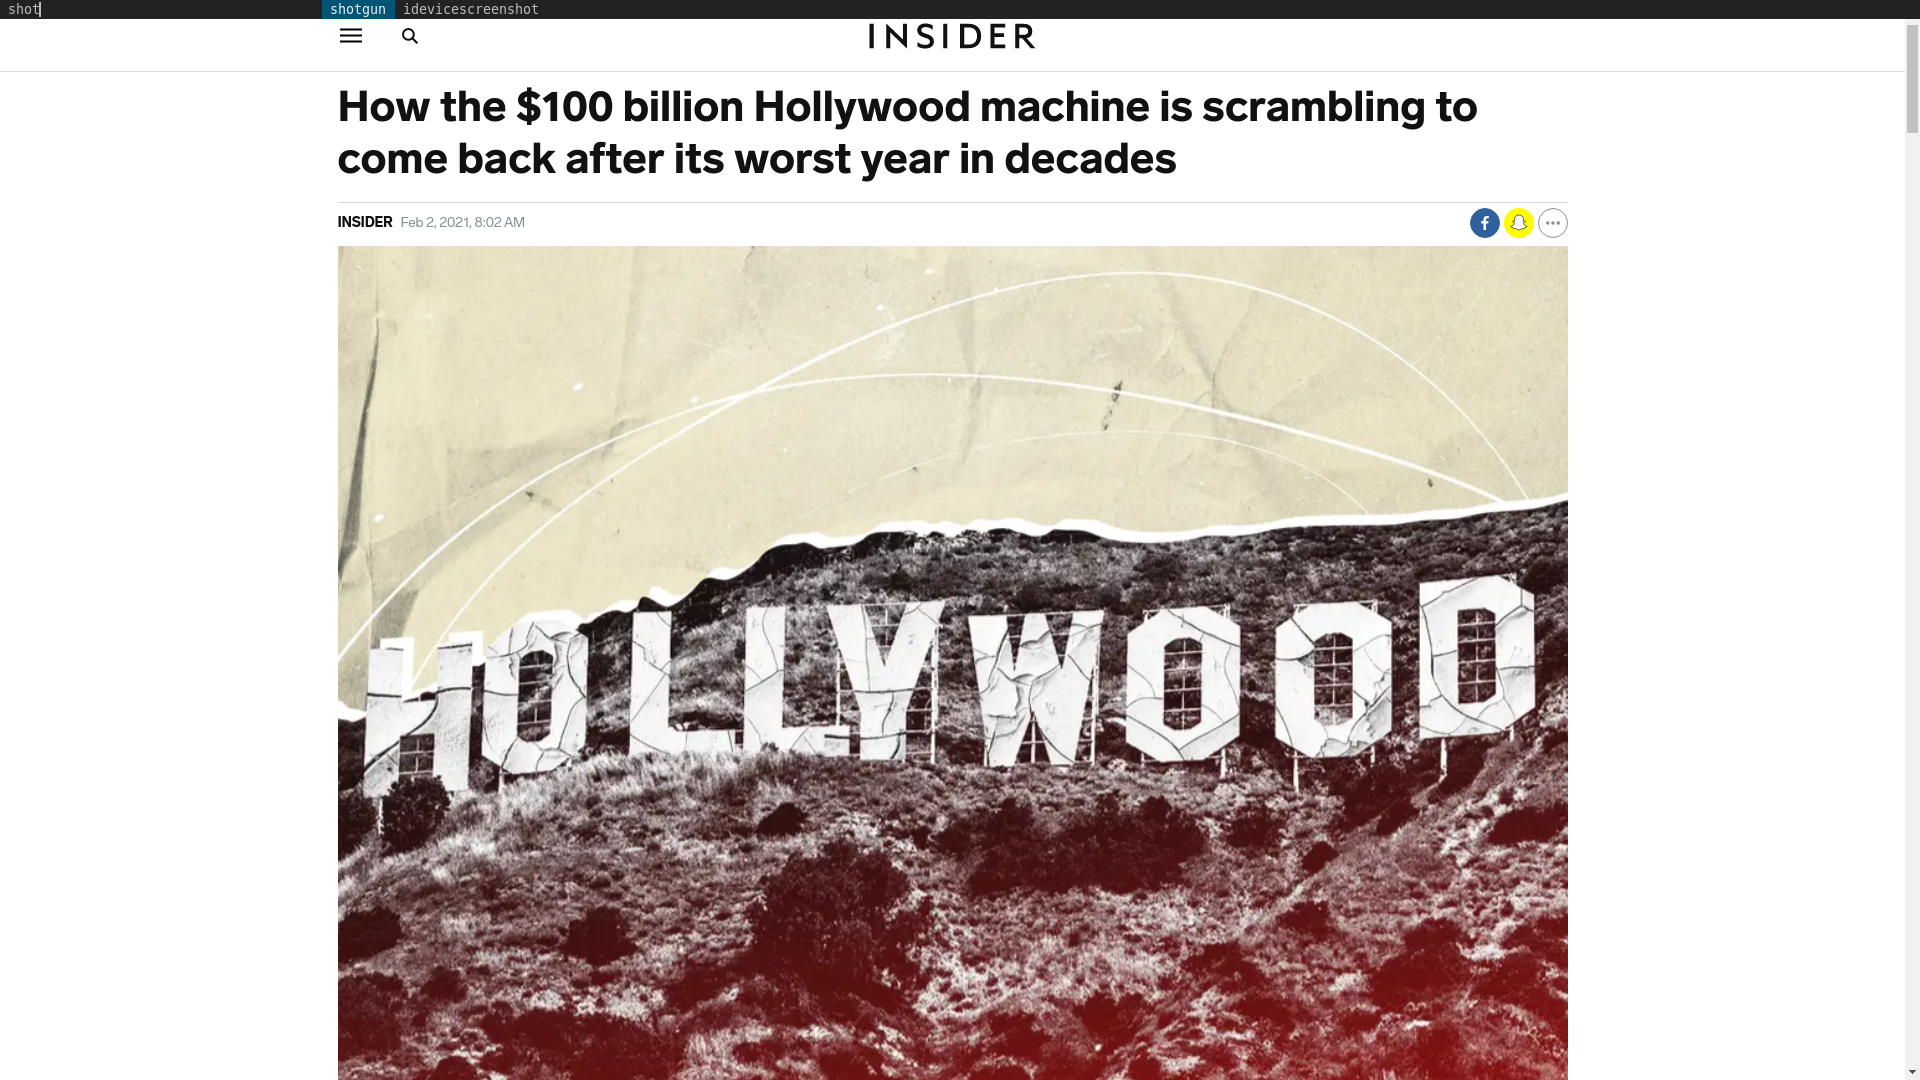 Fairness Rocks News How the $100 billion Hollywood machine is scrambling to come back after its worst year in decades